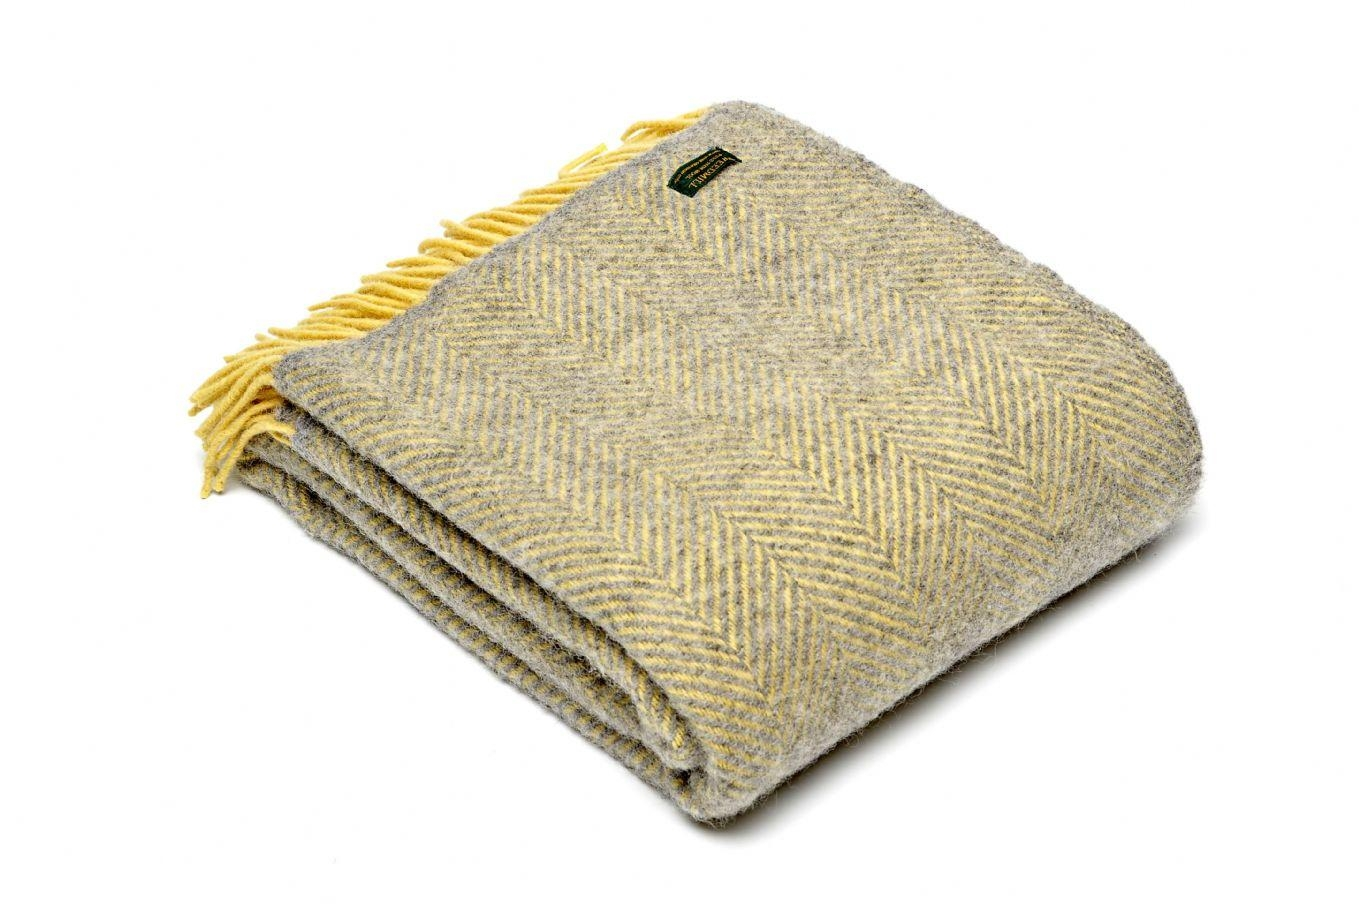 Herringbone Silver Grey & Lemon Yellow Wool Blanket Throw Regarding Grey Throws For Sofas (View 11 of 20)